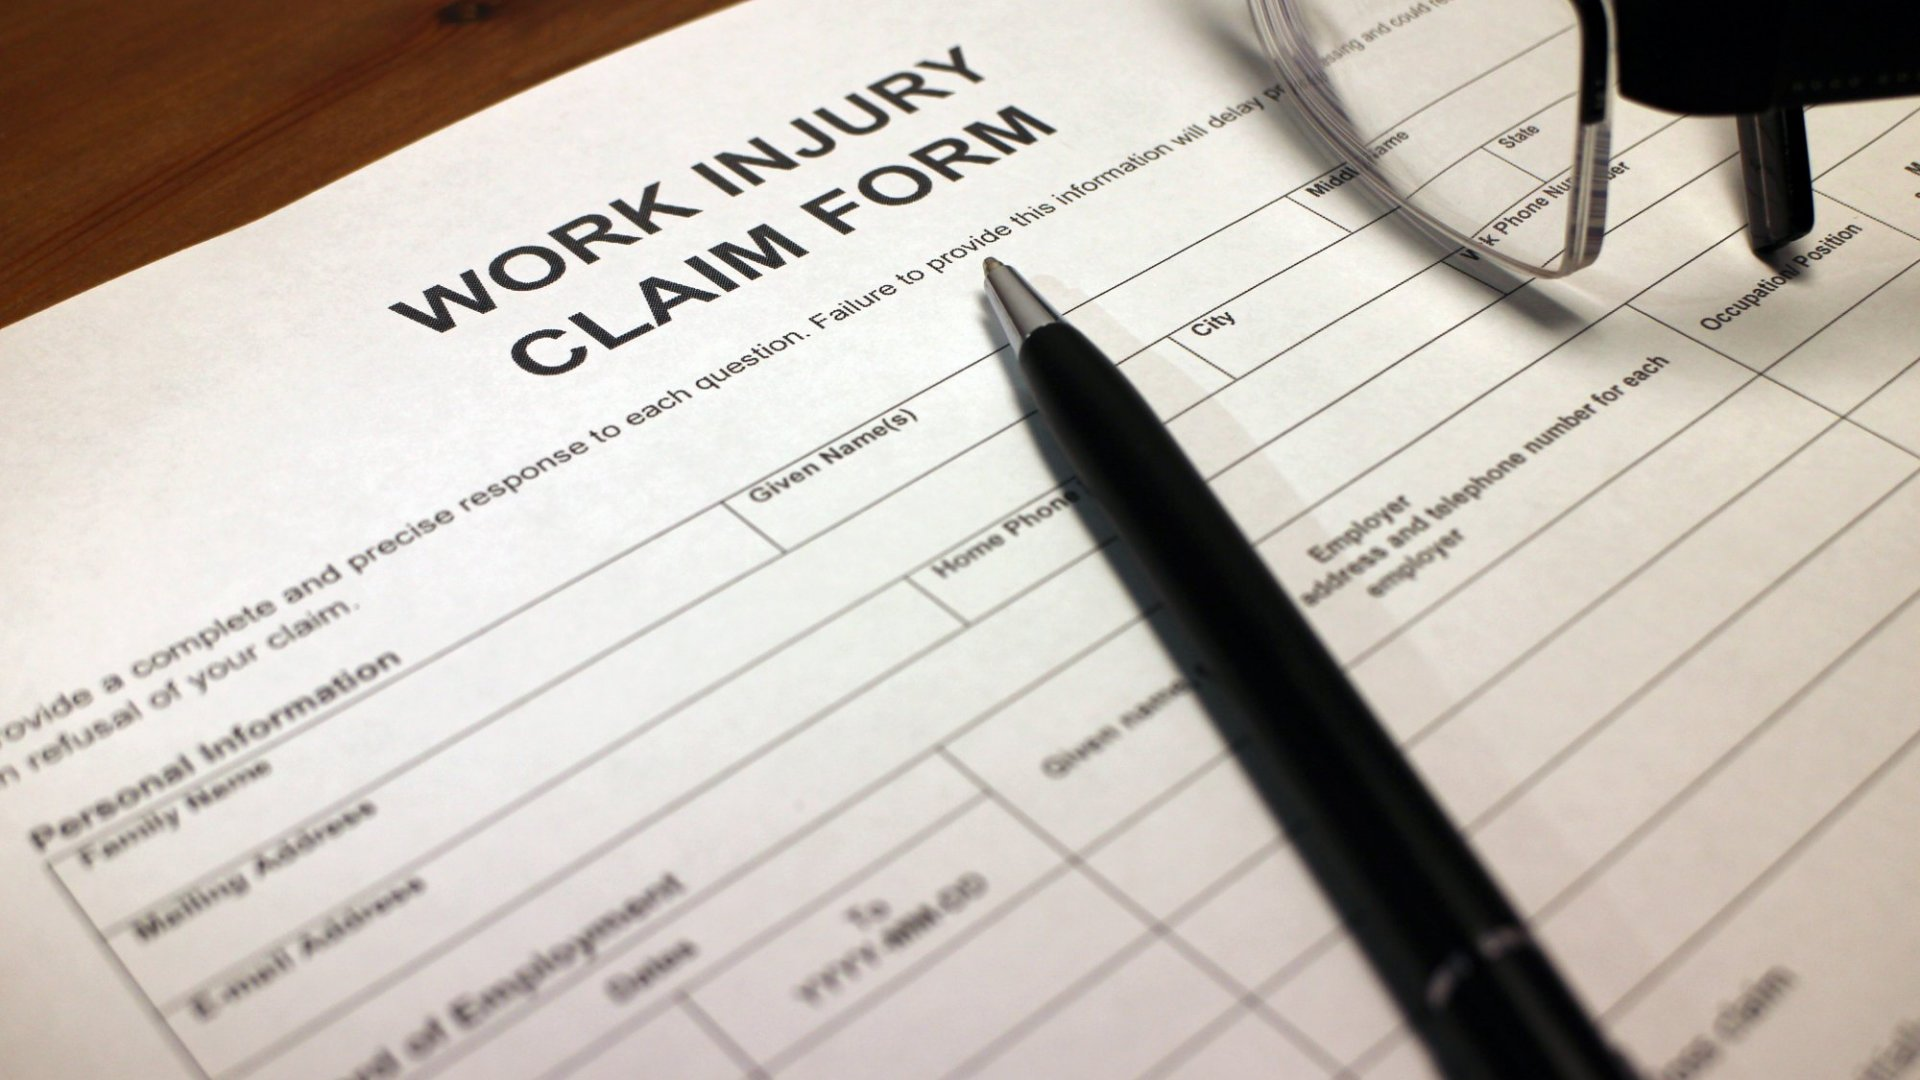 5 Surefire Ways to Contain Workers' Compensation Costs